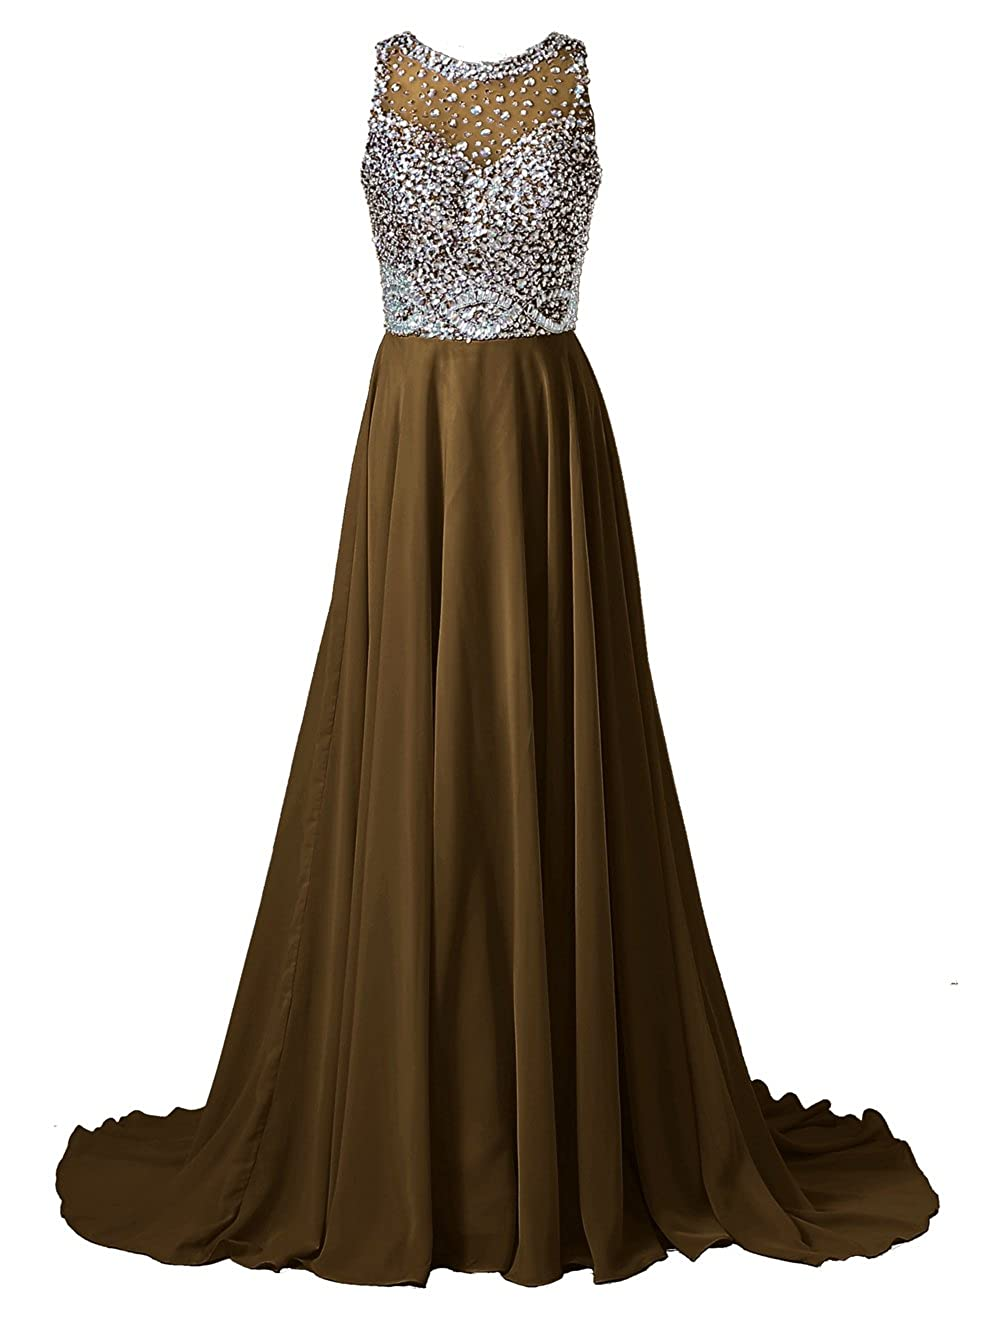 a40292c4c4b5 Callmelady Chiffon Long Prom Dresses With High Neck   Beaded Mesh Bodice  (31 Colors) CML2